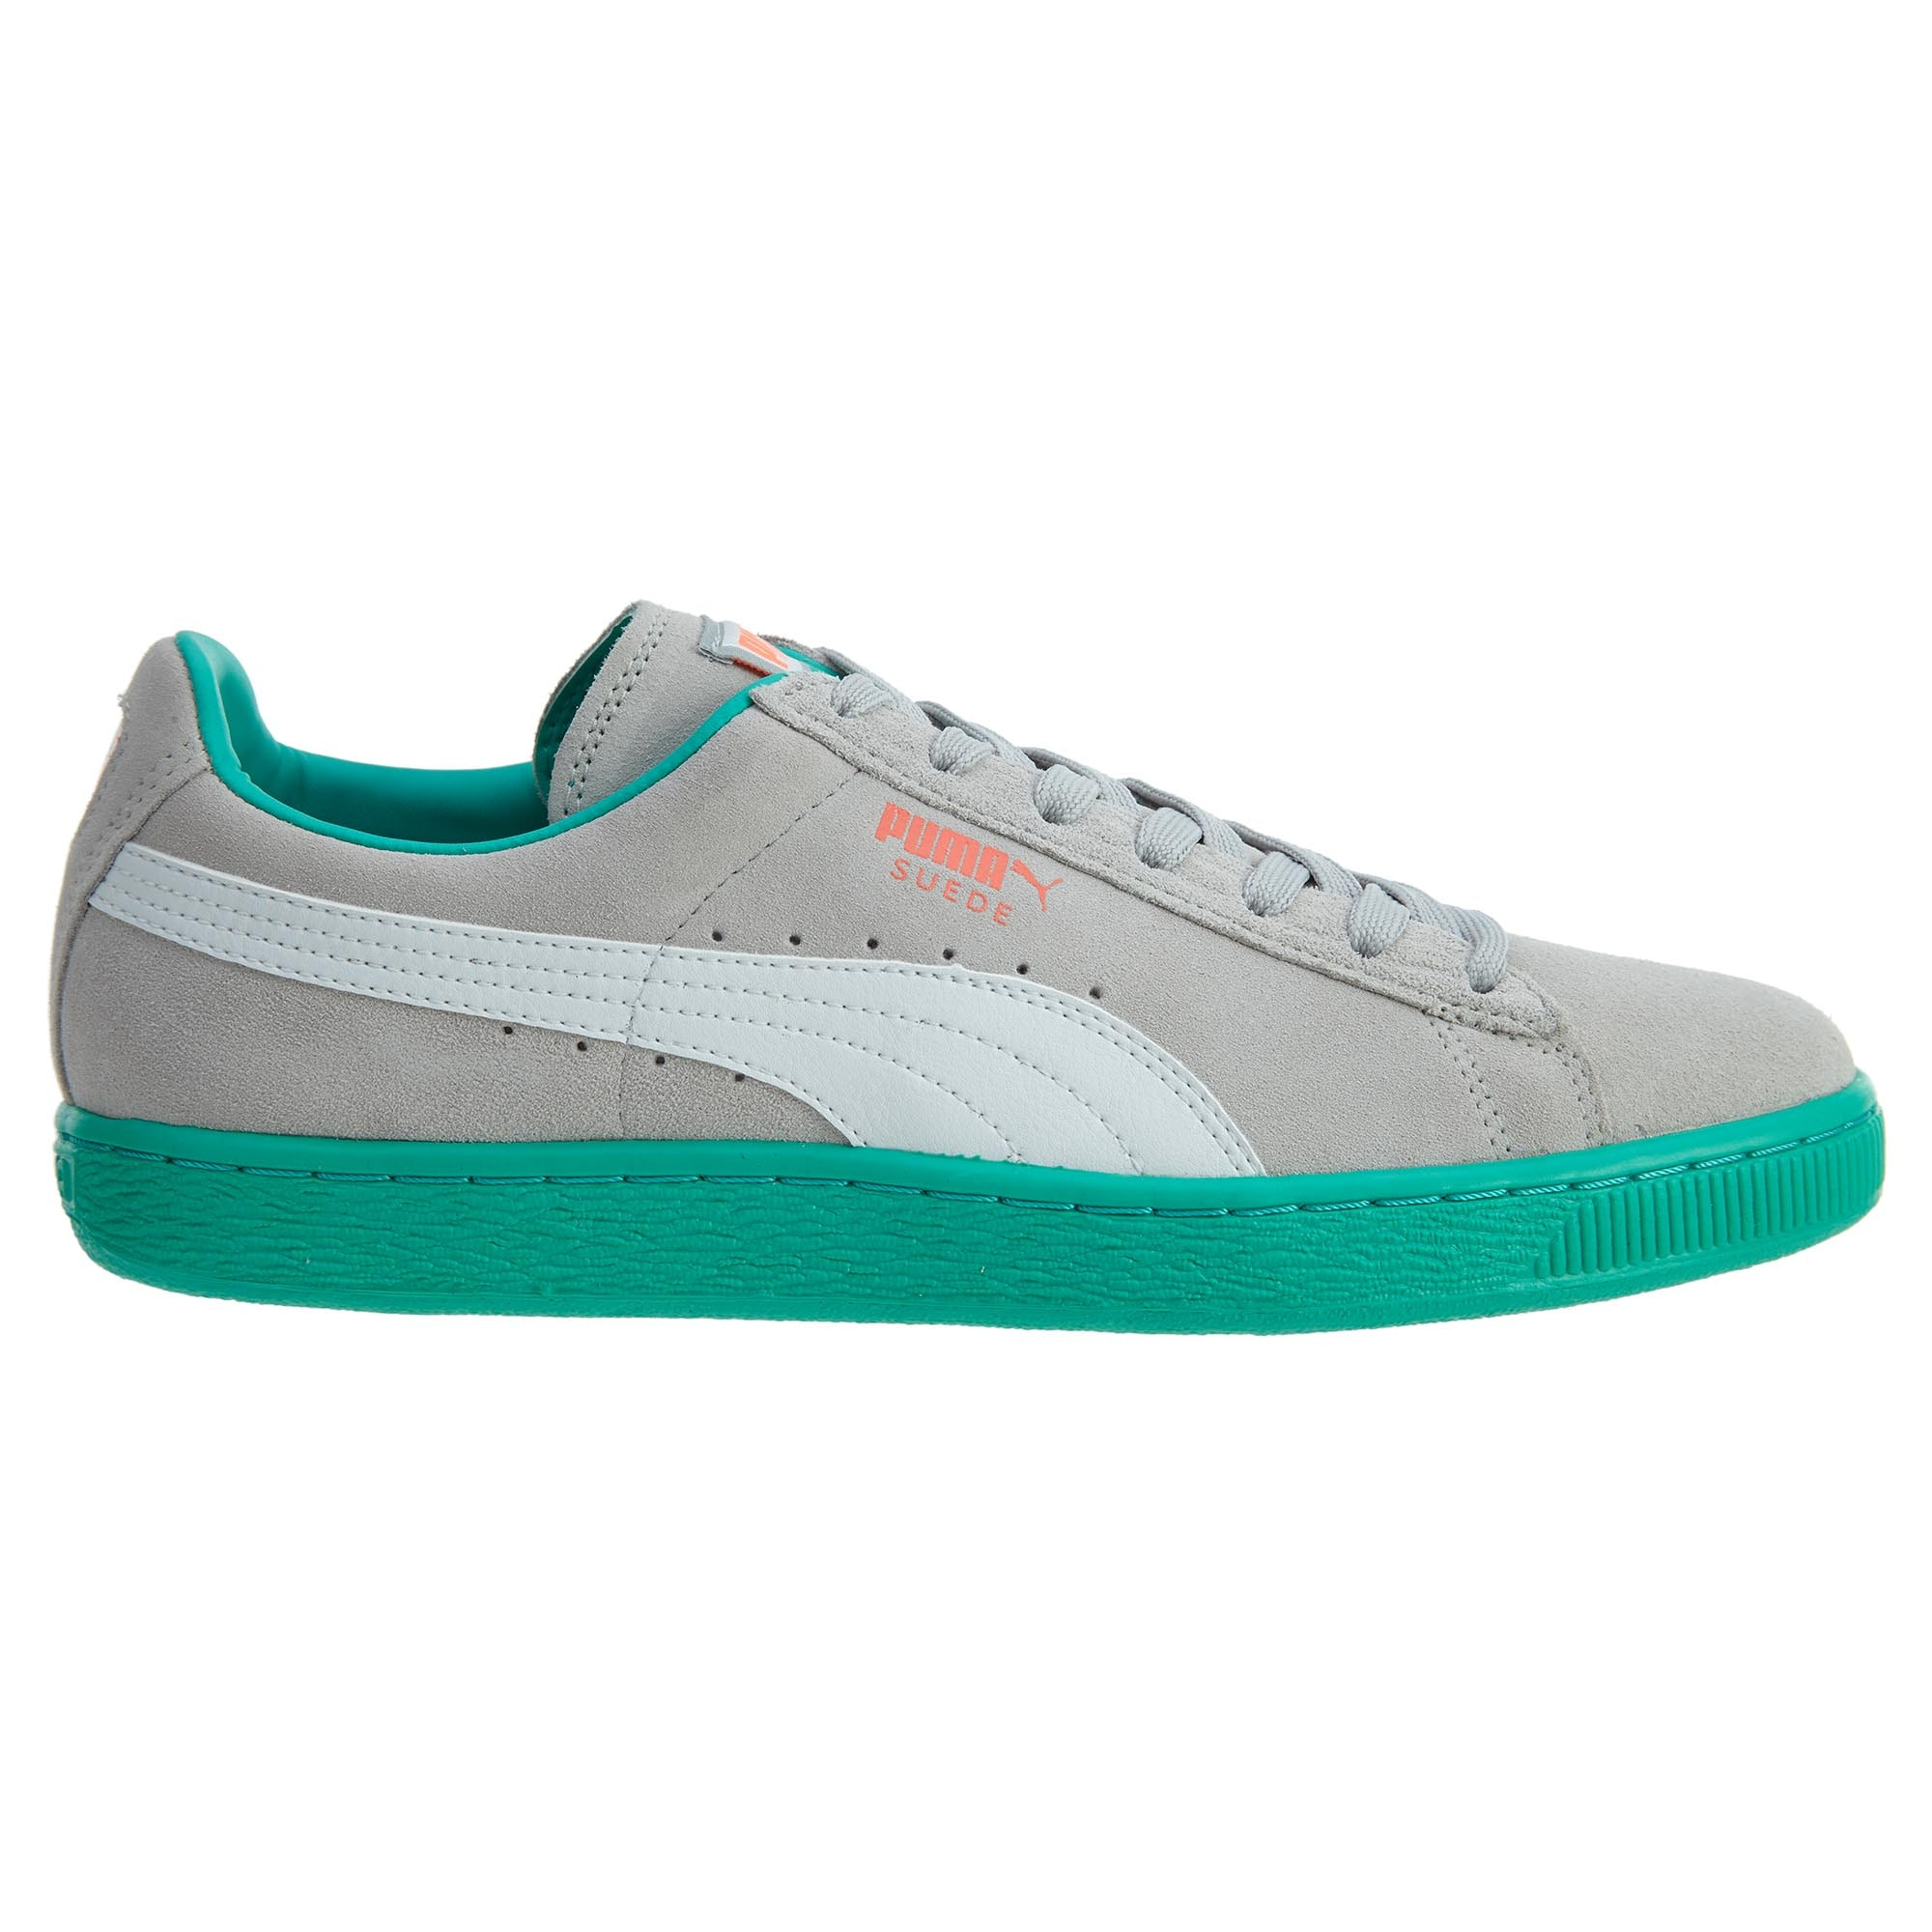 Puma Suede Classic + Lfs Grey Violet-White-Fluo Teal